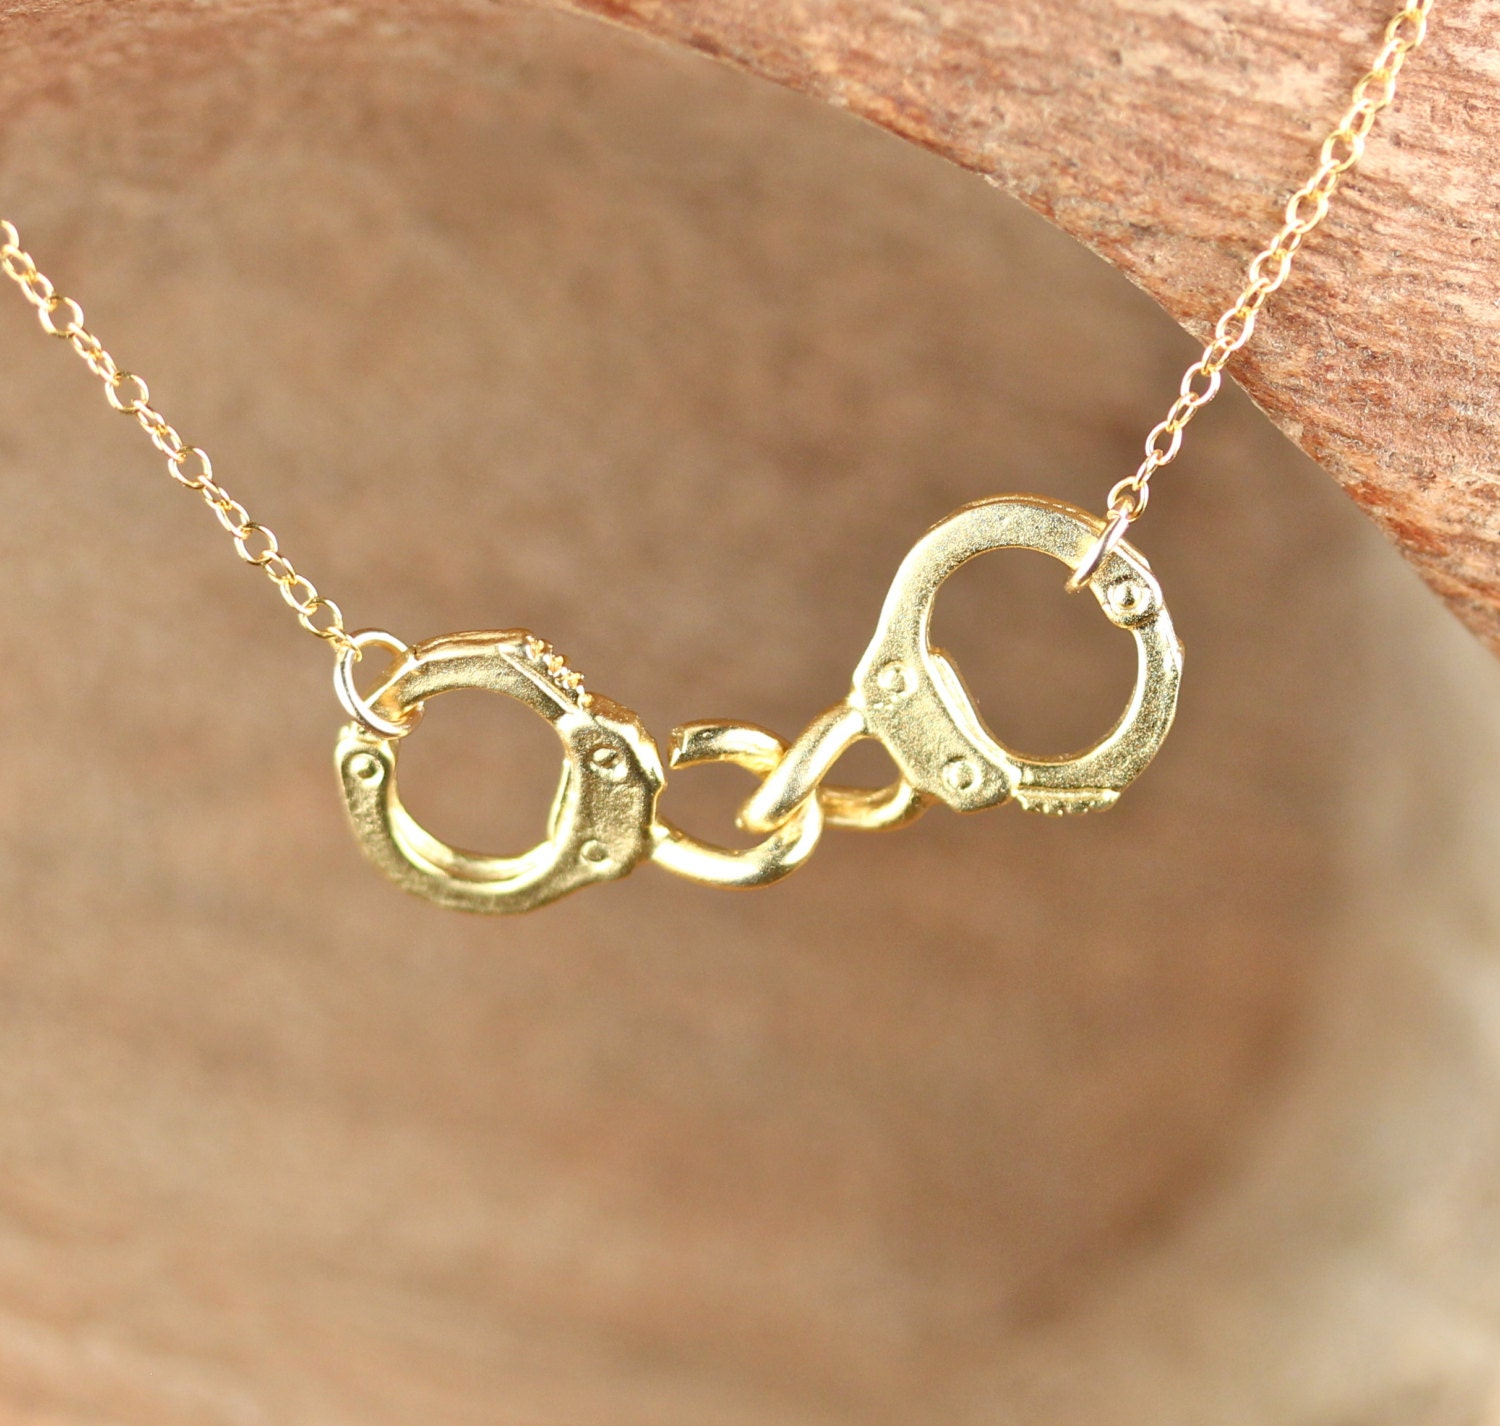 Handcuff Necklace Gold: Handcuff Necklace Partners In Crime A Pair Of Gold